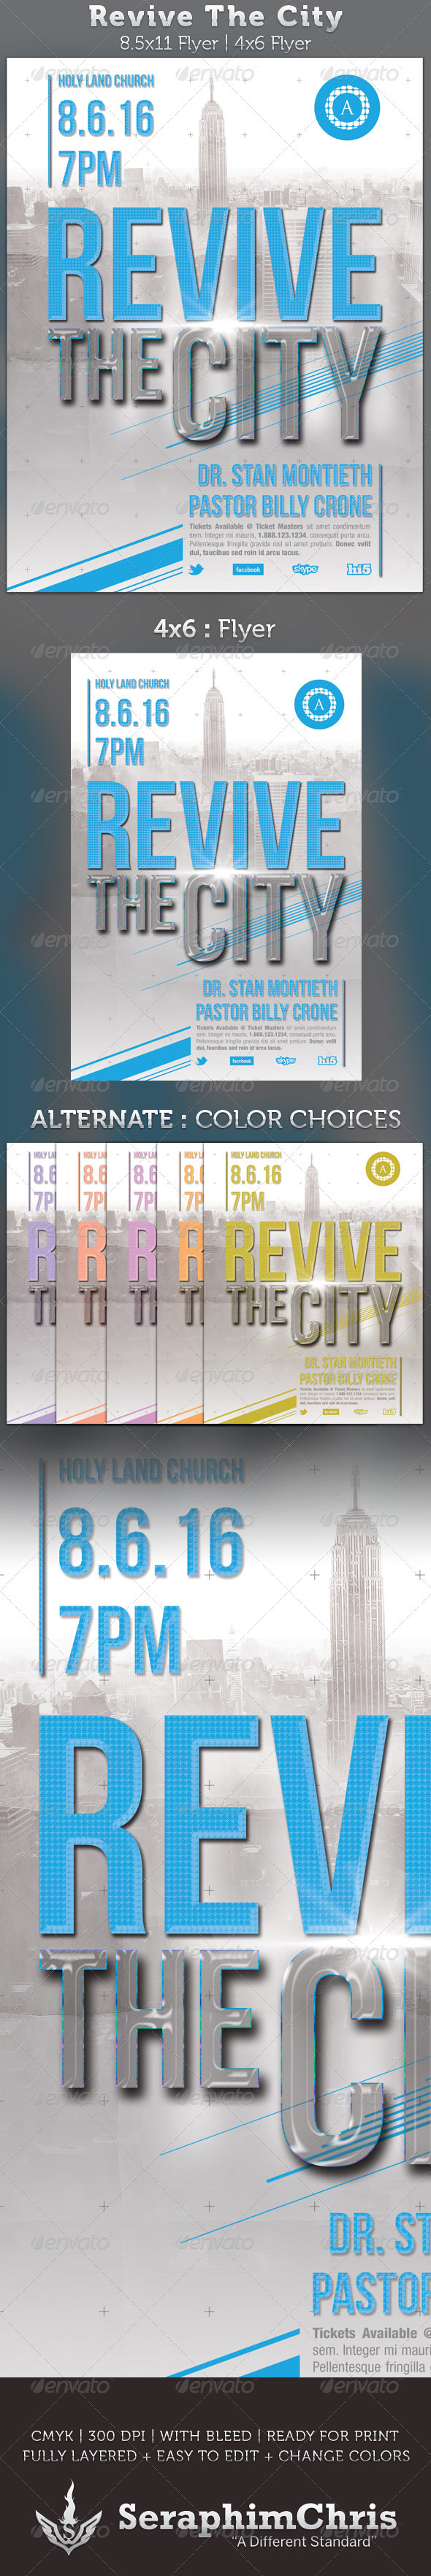 Revive The City Church Flyer Template - Church Flyers